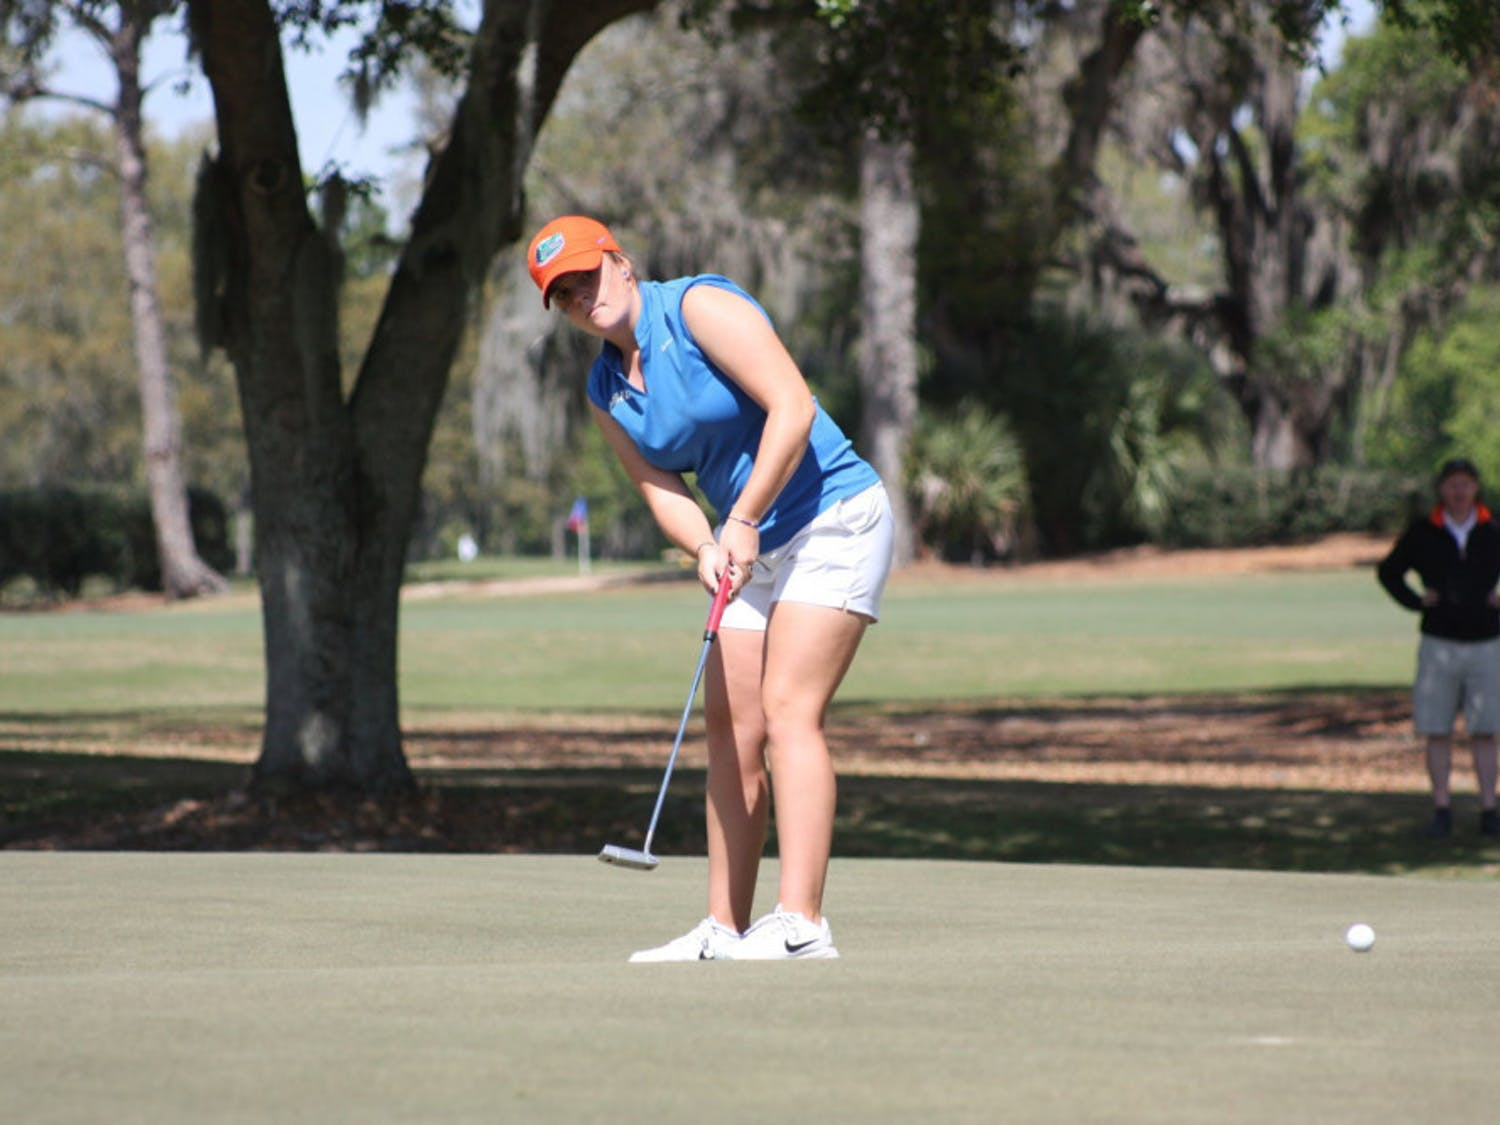 Junior Marta Perez finished Day 1 of the SEC Tournament in a tie for second place at three-under par.